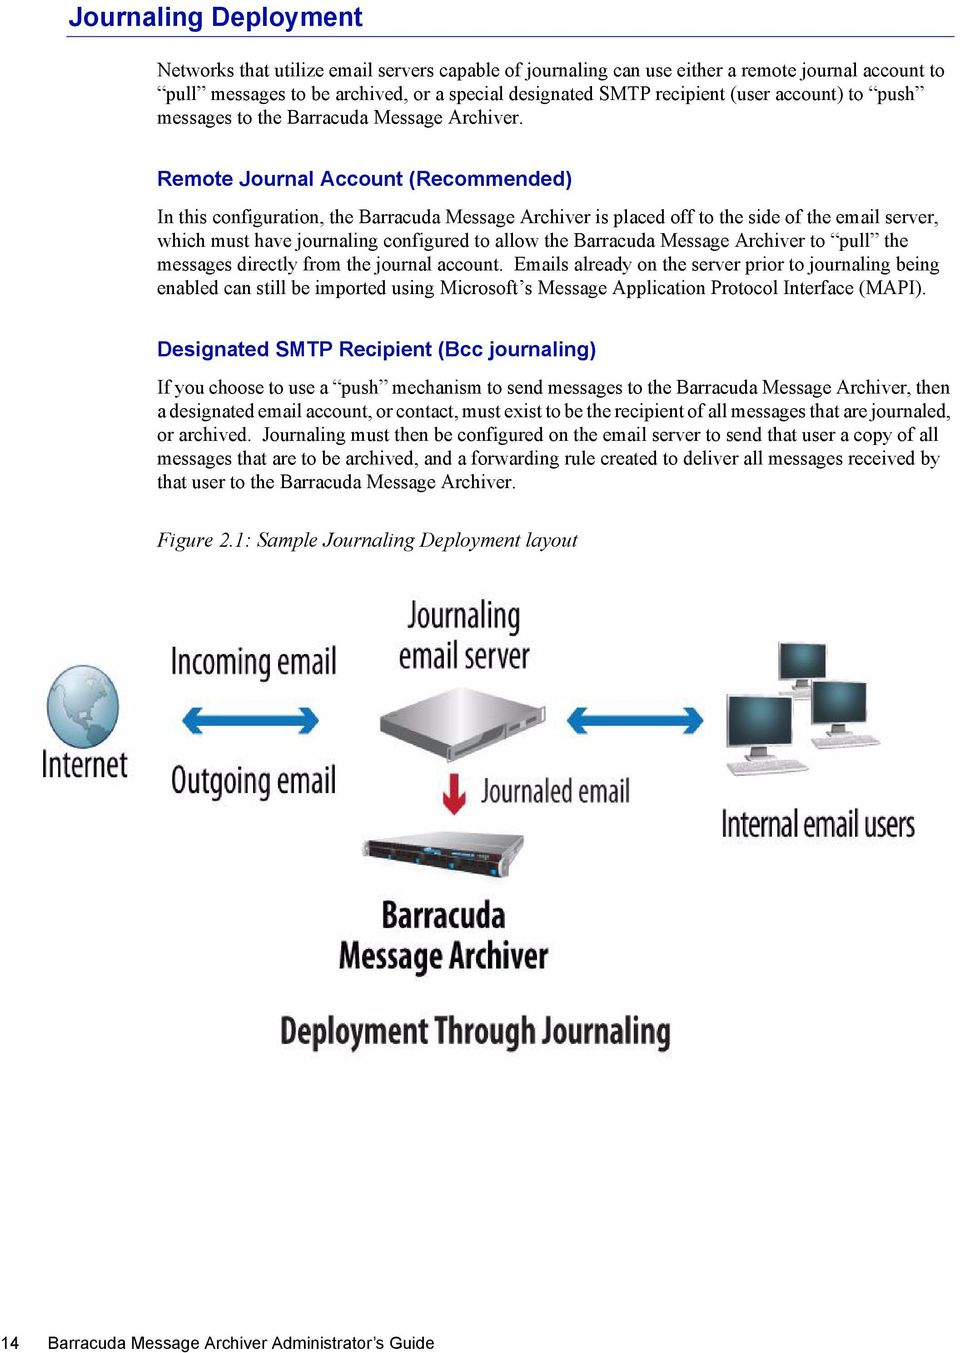 Remote Journal Account (Recommended) In this configuration, the Barracuda Message Archiver is placed off to the side of the email server, which must have journaling configured to allow the Barracuda